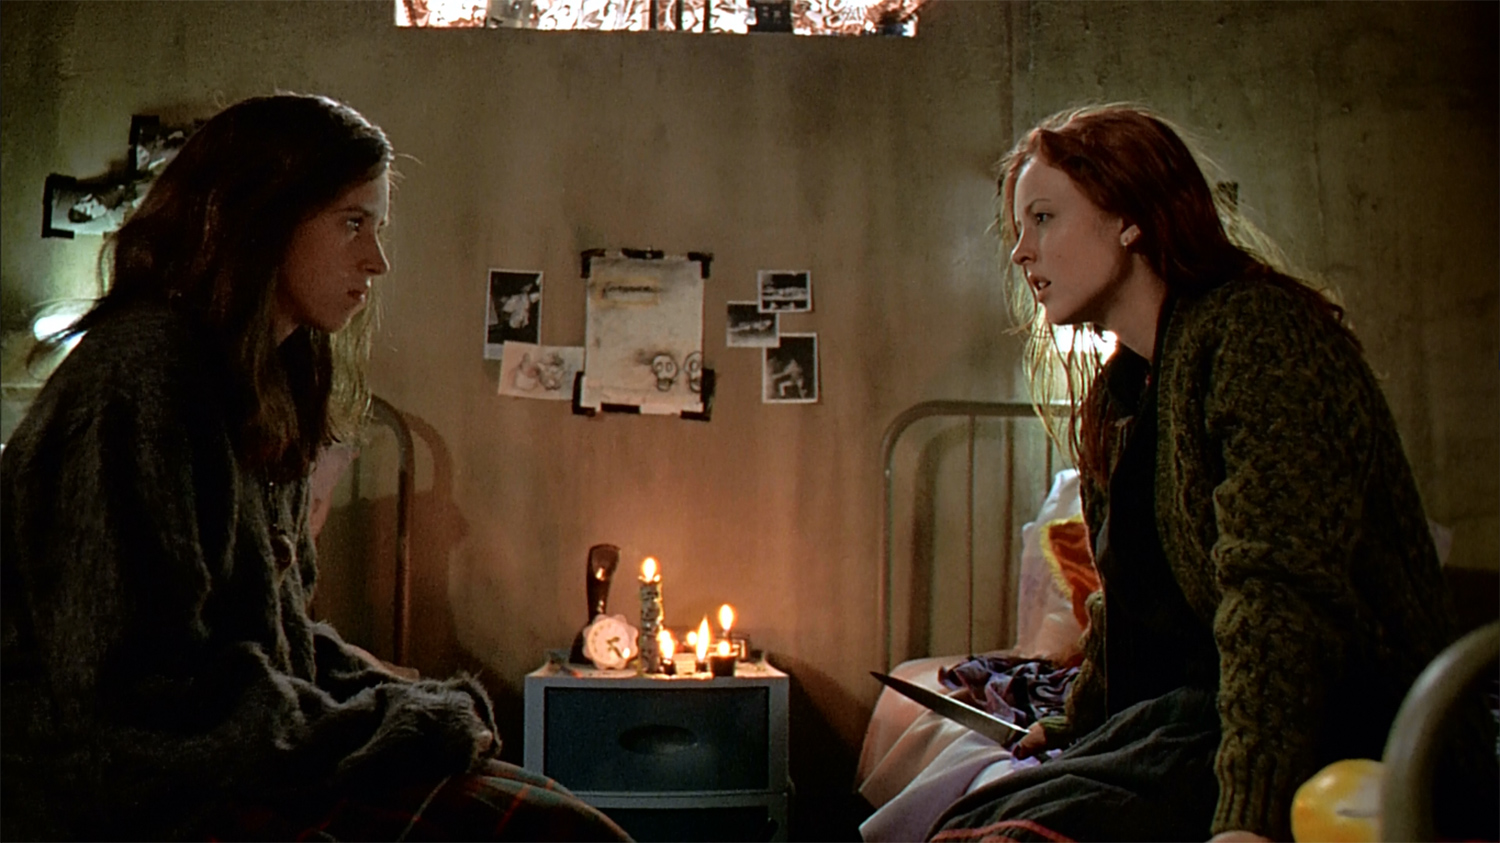 Canadian Horror Films - Ginger Snaps, sisters pact